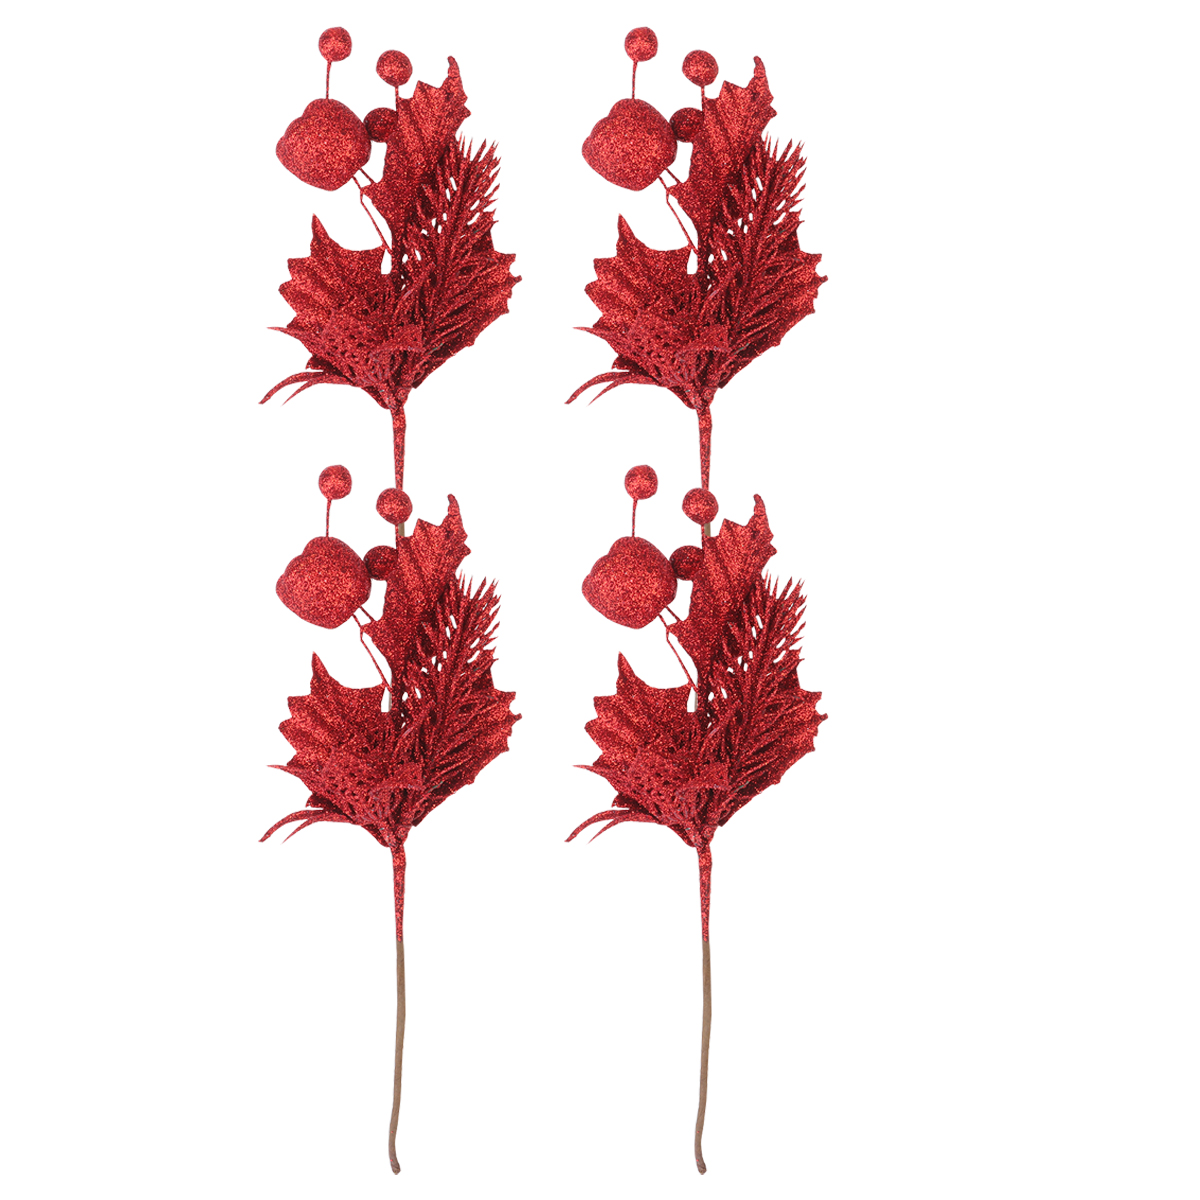 4x Christmas Glitter Berries w Leaves Stem Artificial Floral Decoration Clip On